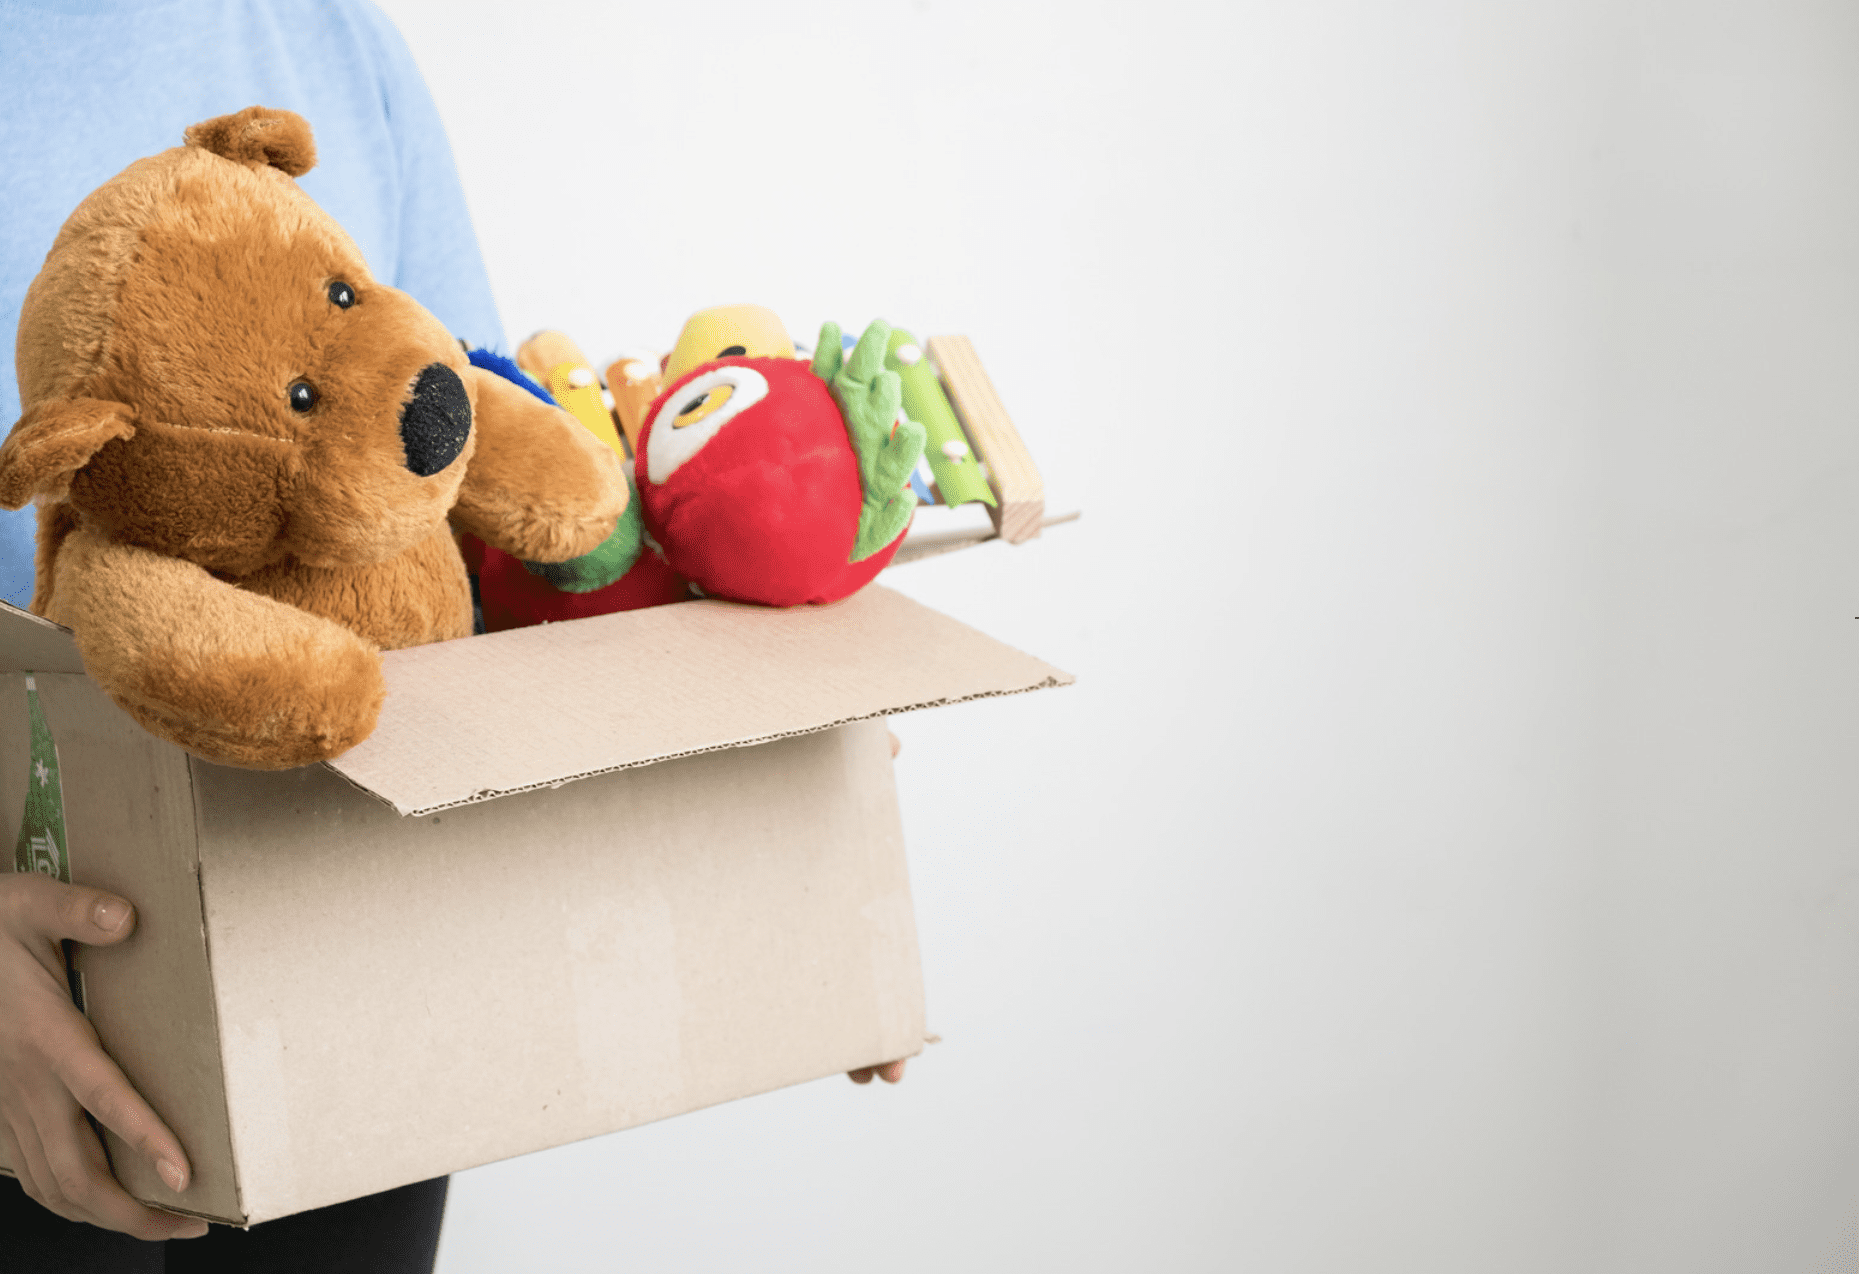 Person holding a box of stuffed animals to donate